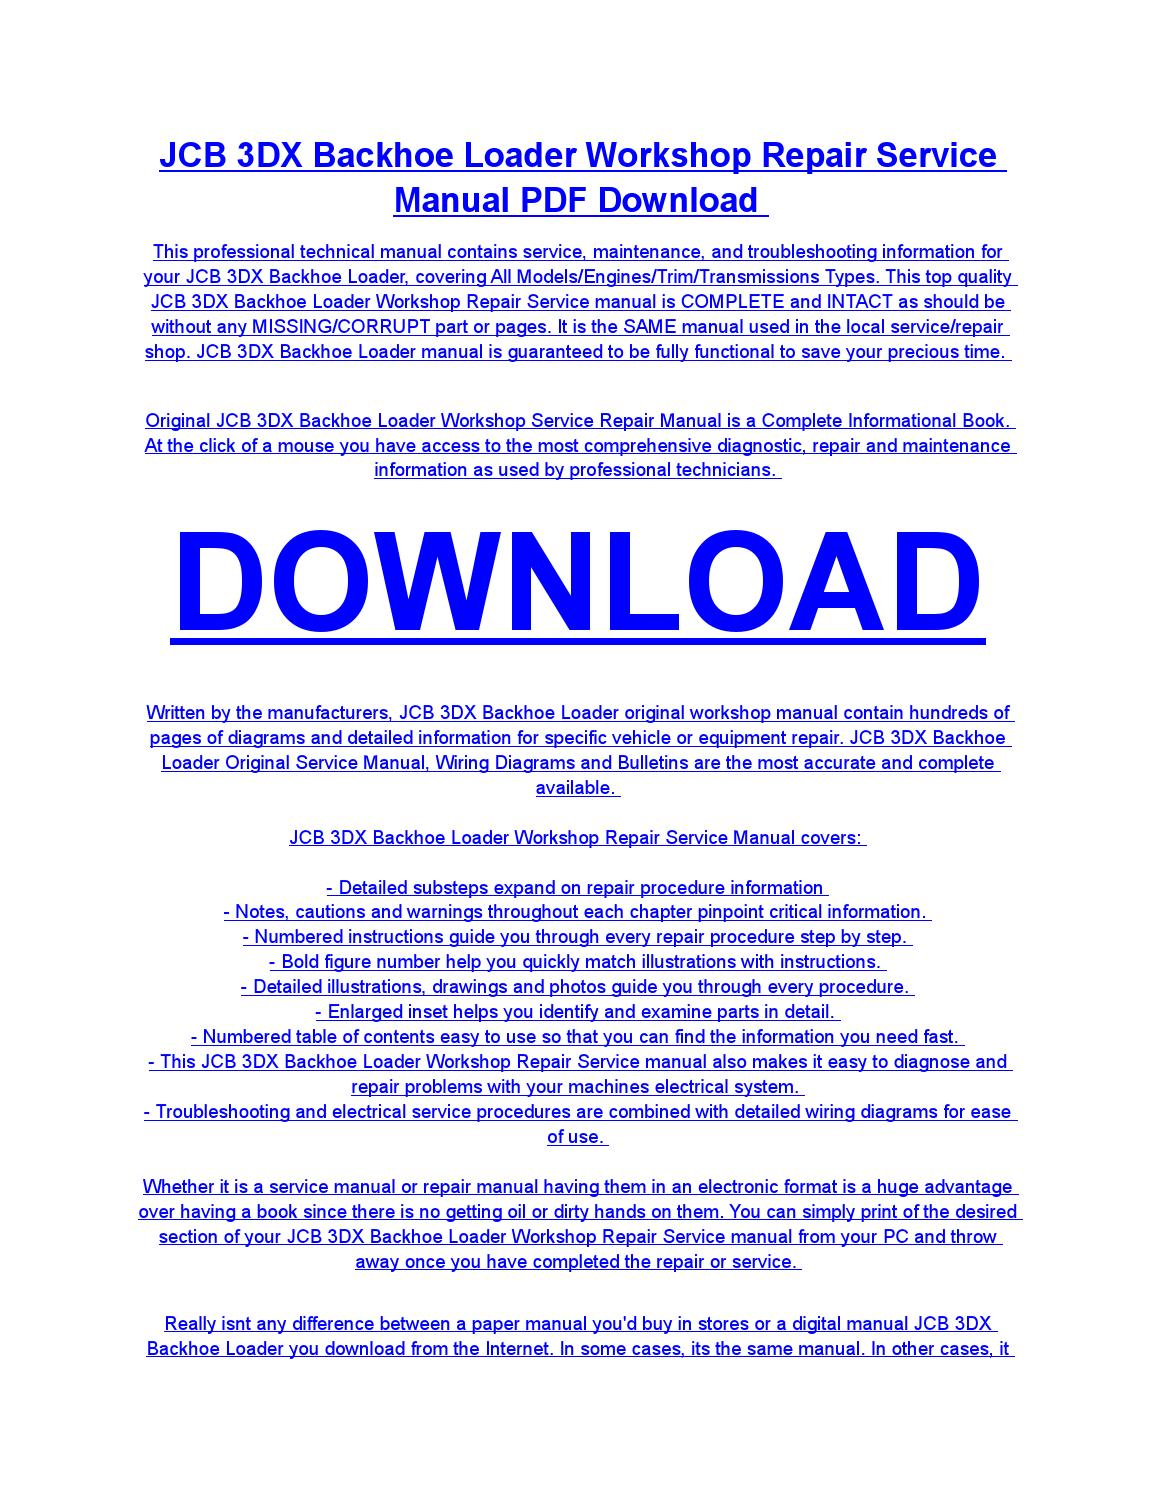 Jcb Wiring Diagram Pdf For Forklifts 3dx Backhoe Loader Service Repair Workshop Manual Download By Rh